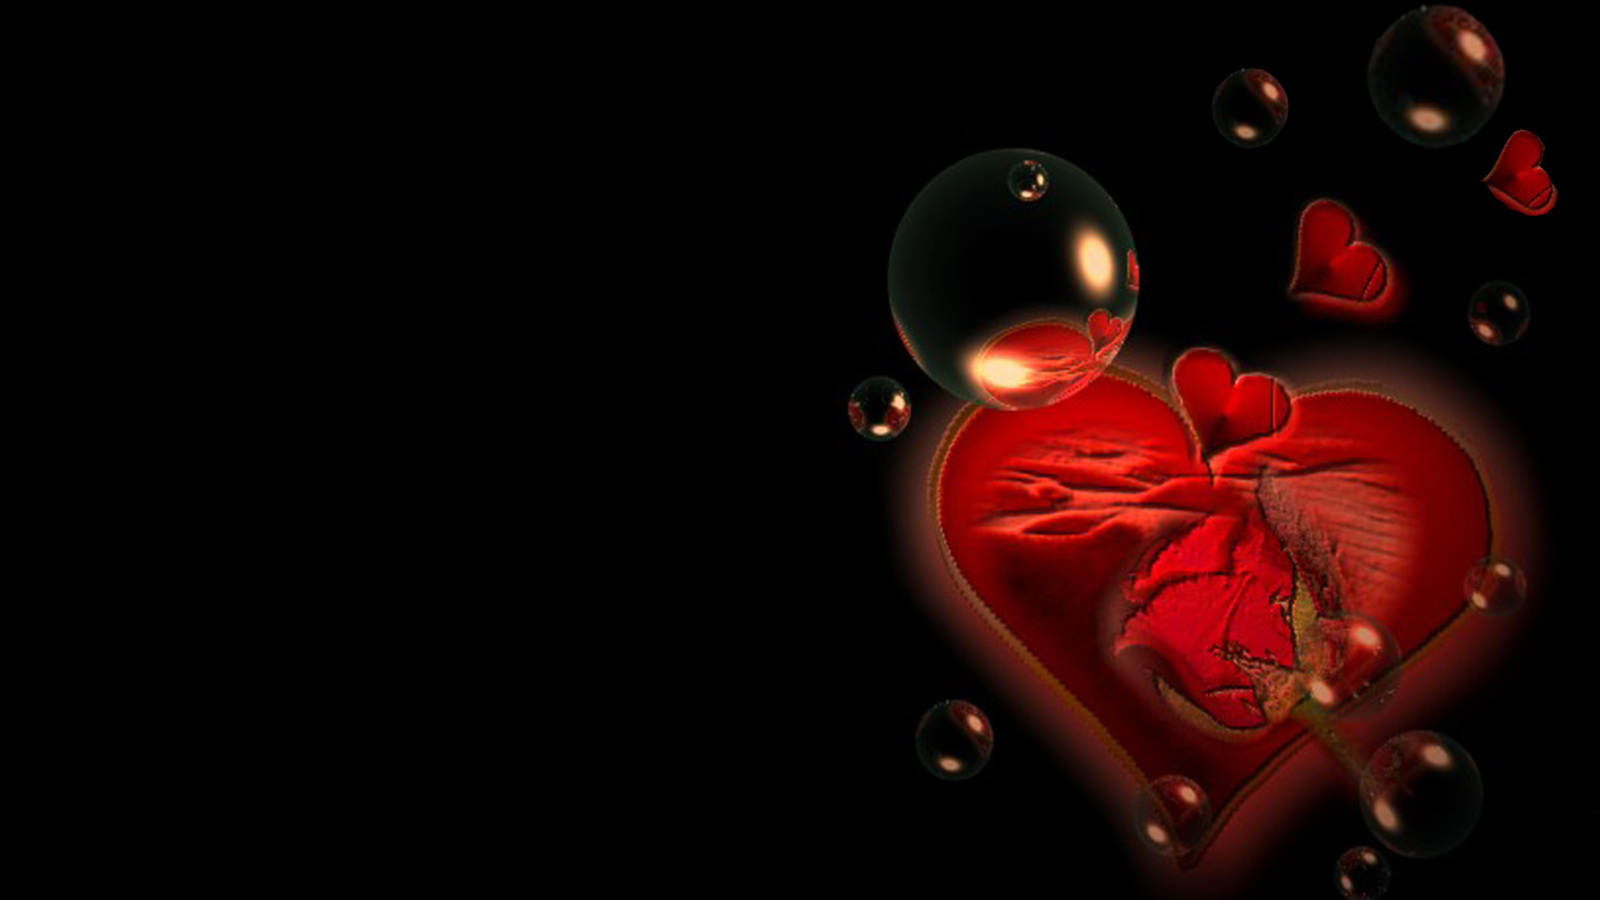 Free Download Wallpaper Categories 1600x900 Hd Love Related Tags